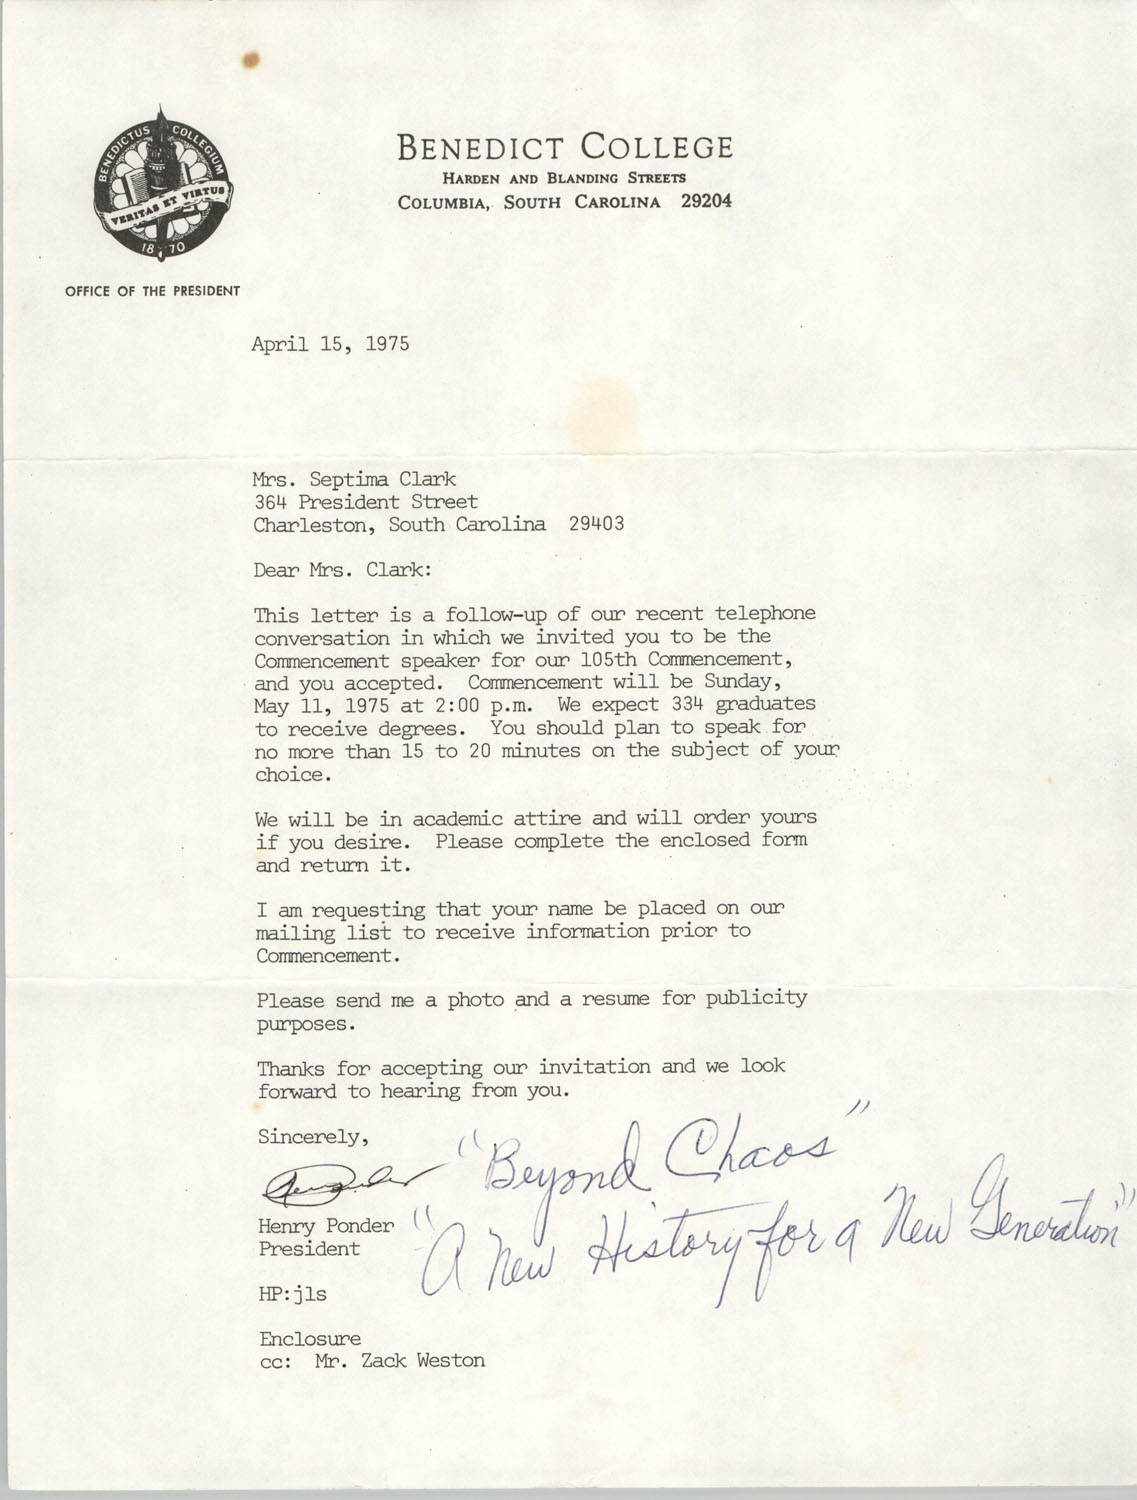 Letter from Henry Ponder to Septima P. Clark, April 15, 1975